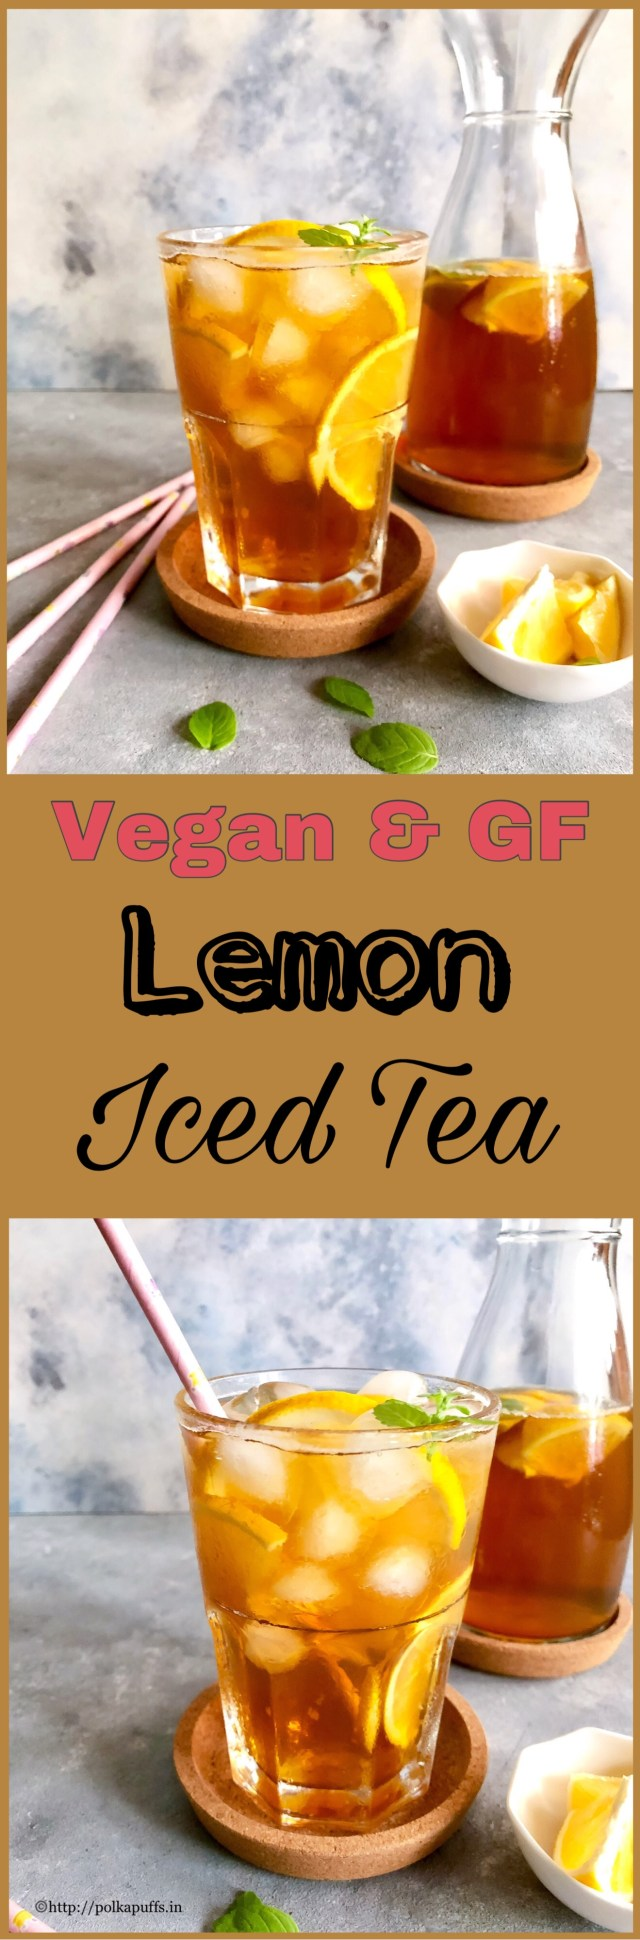 Lemon Iced Tea | How to make Lemon Iced Tea